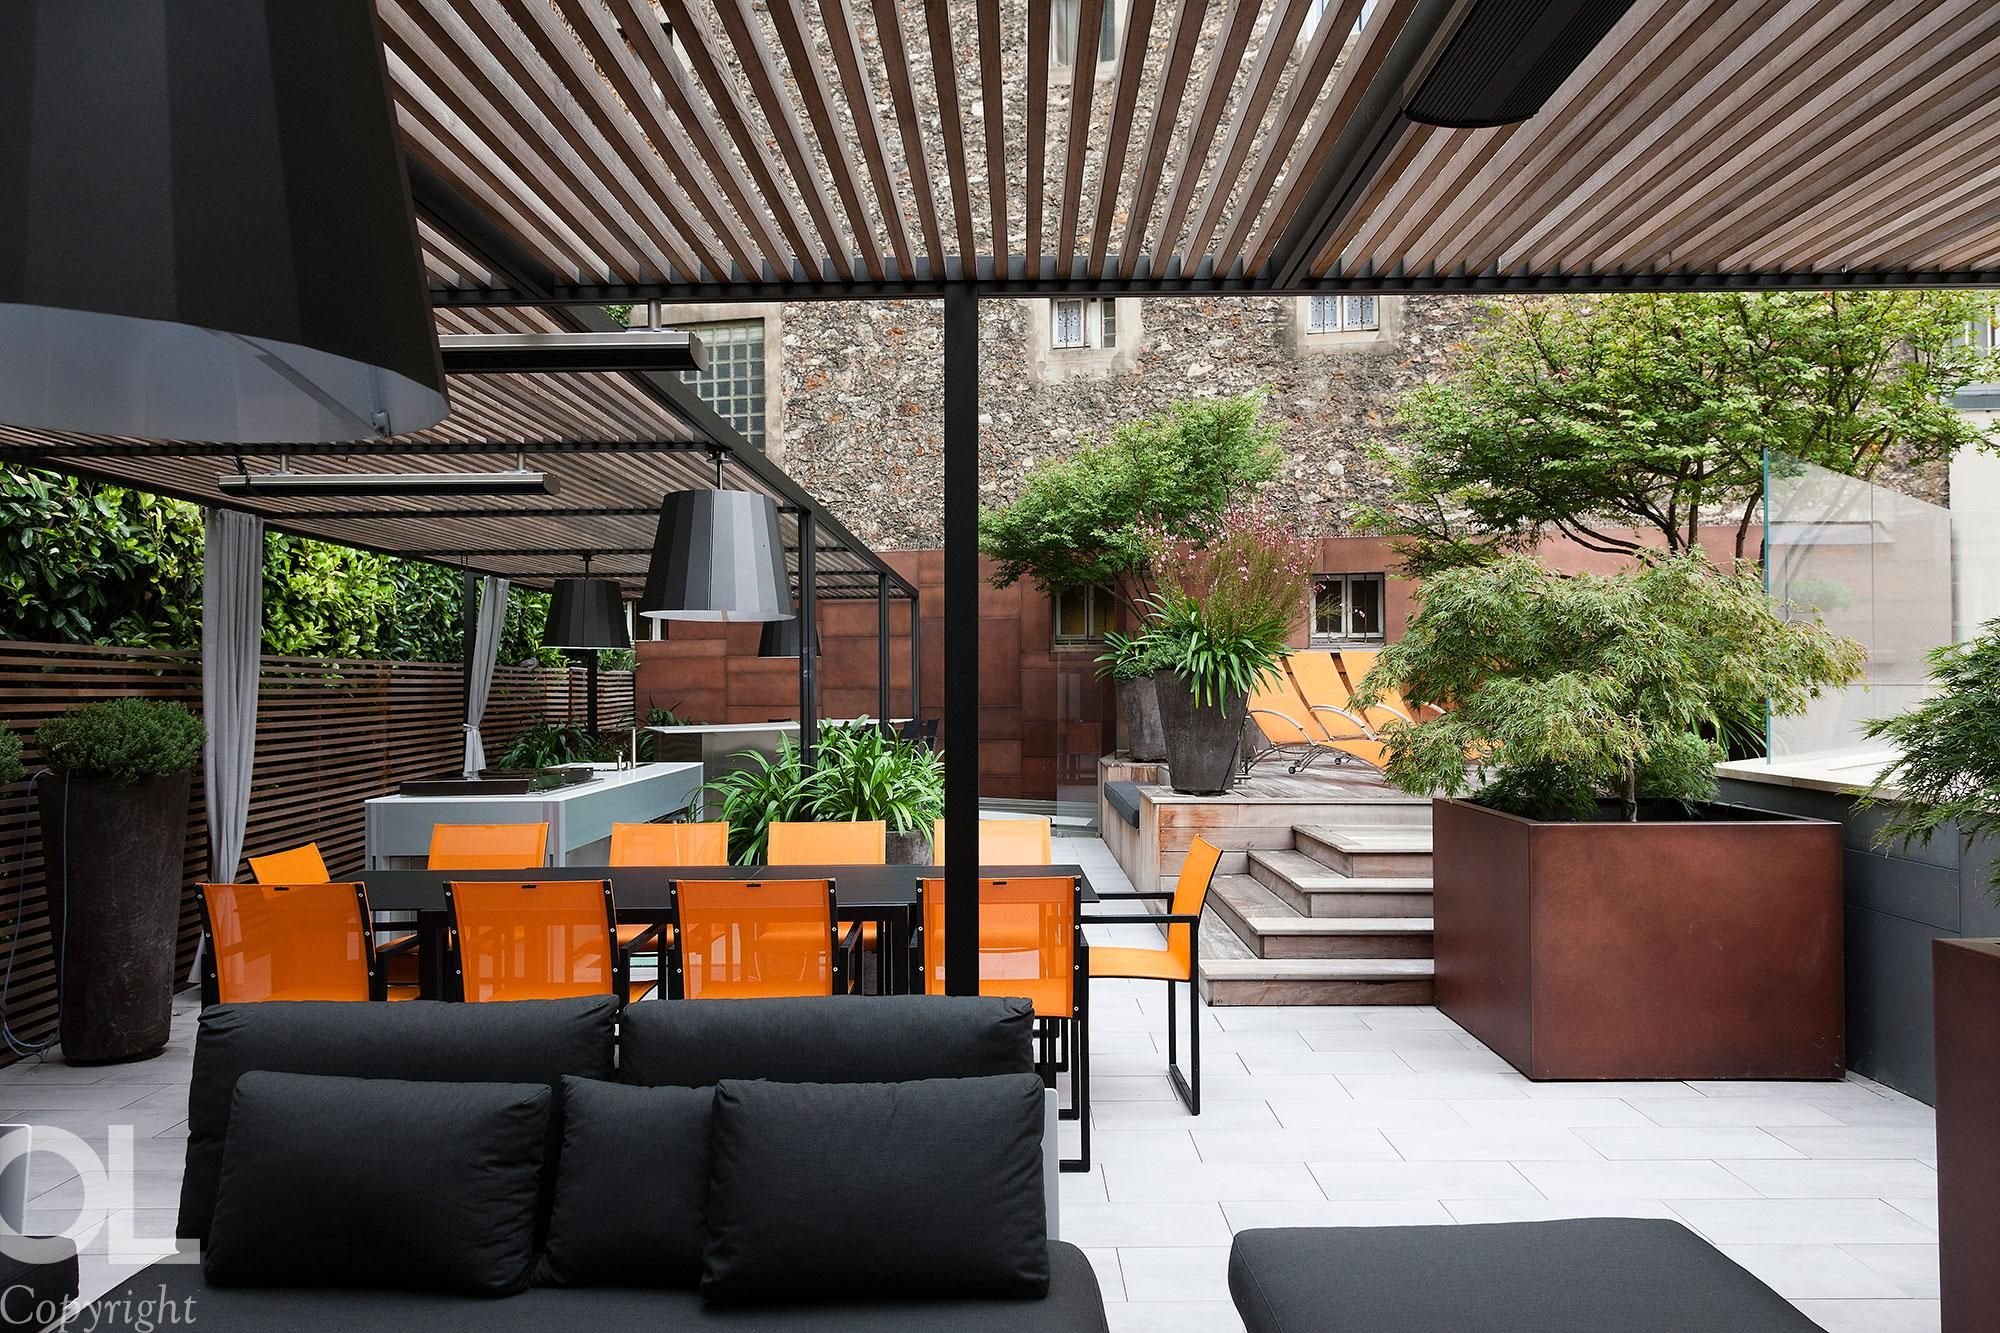 Prive Villa Maison Particuliere Hotel Particulier Charles Dickens Helene Et Olivier Lempere Architecture Exterior Outdoor Furniture Sets Outdoor Spaces